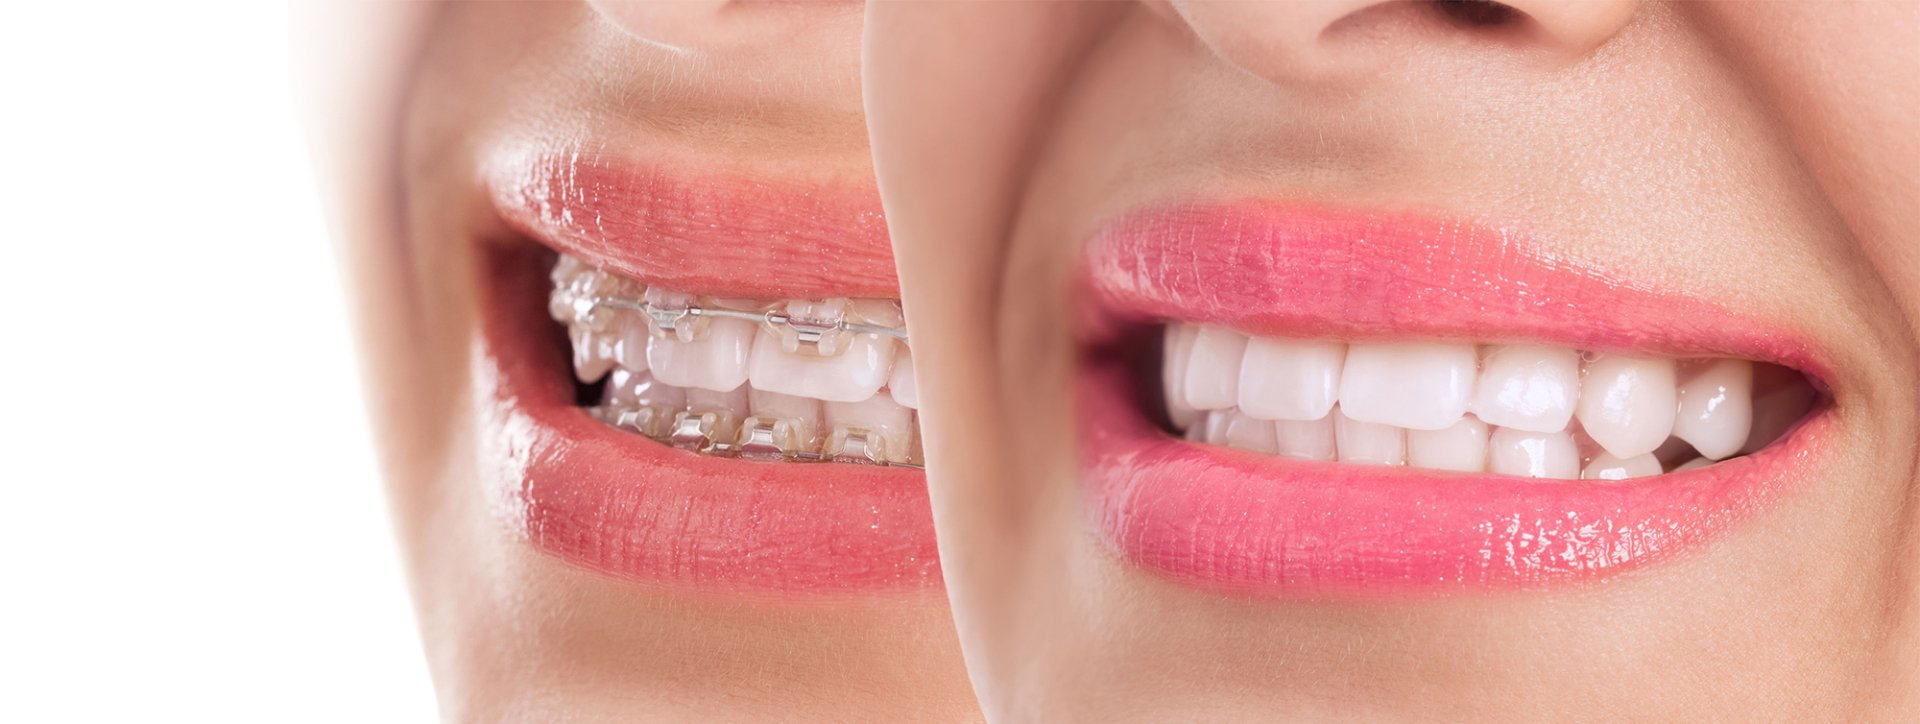 Things To Consider When Researching Invisalign Brace